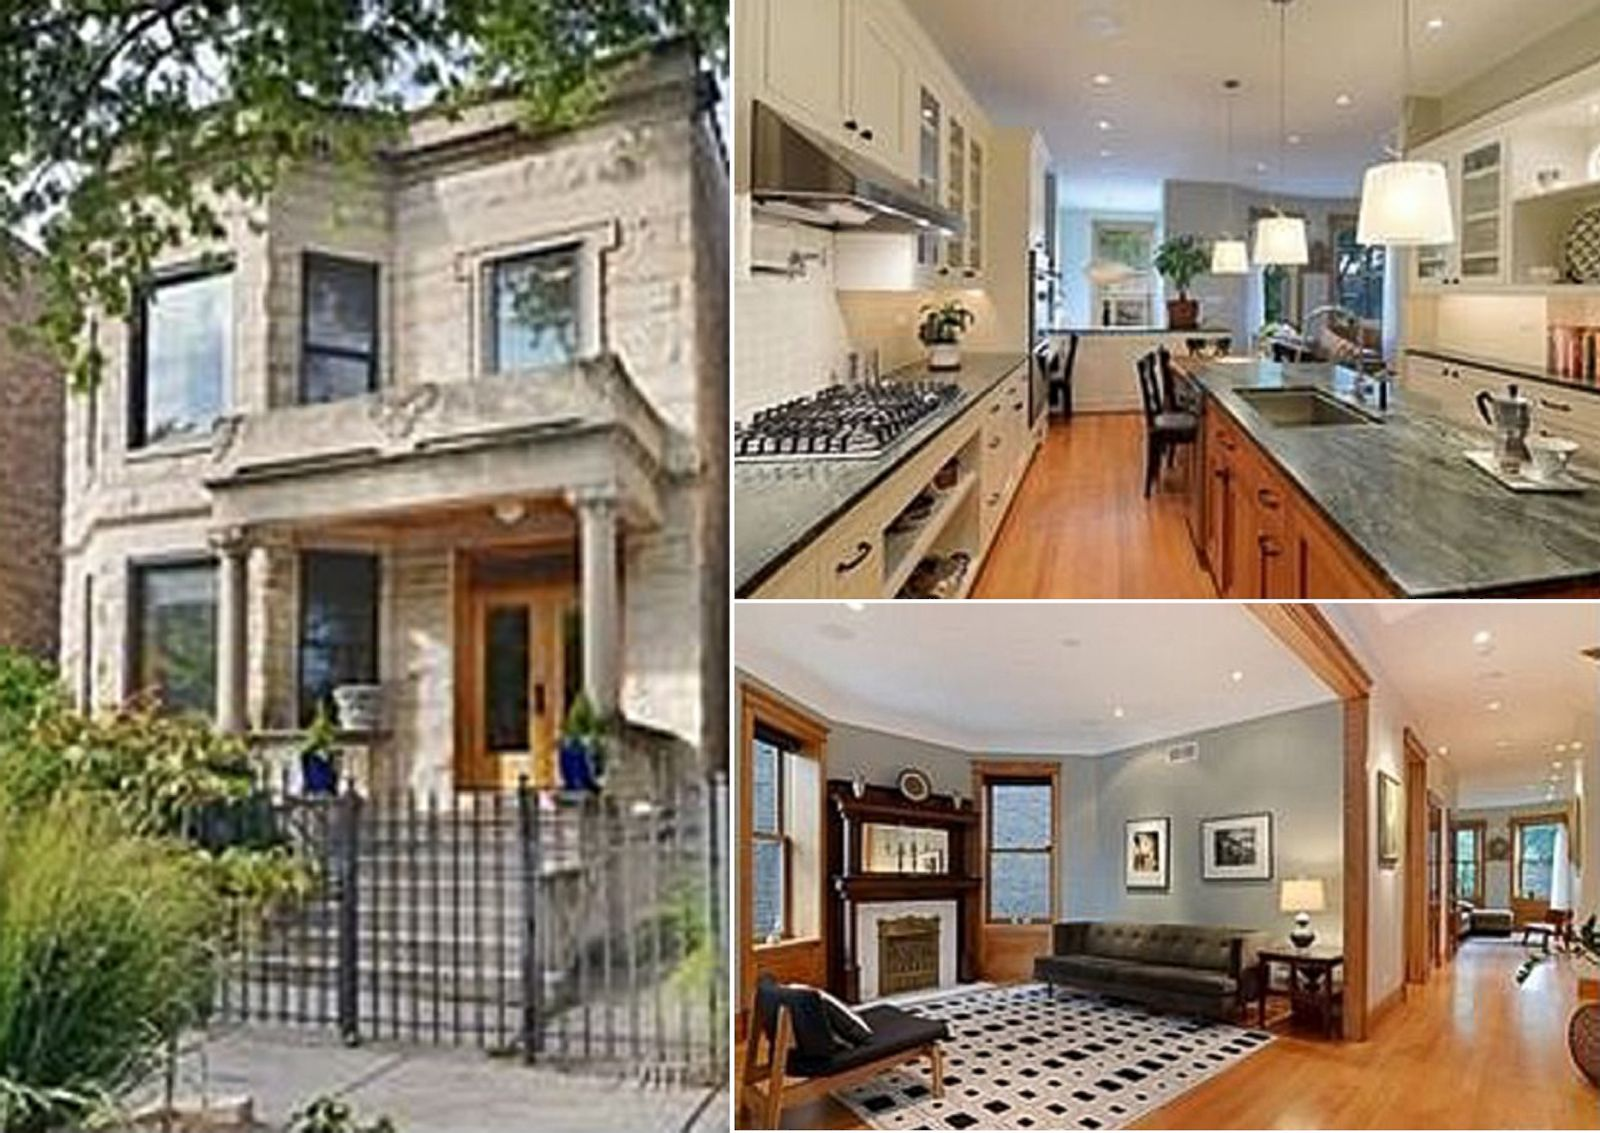 7 renovated row homes for sale photos image 6 abc news for Row houses for sale